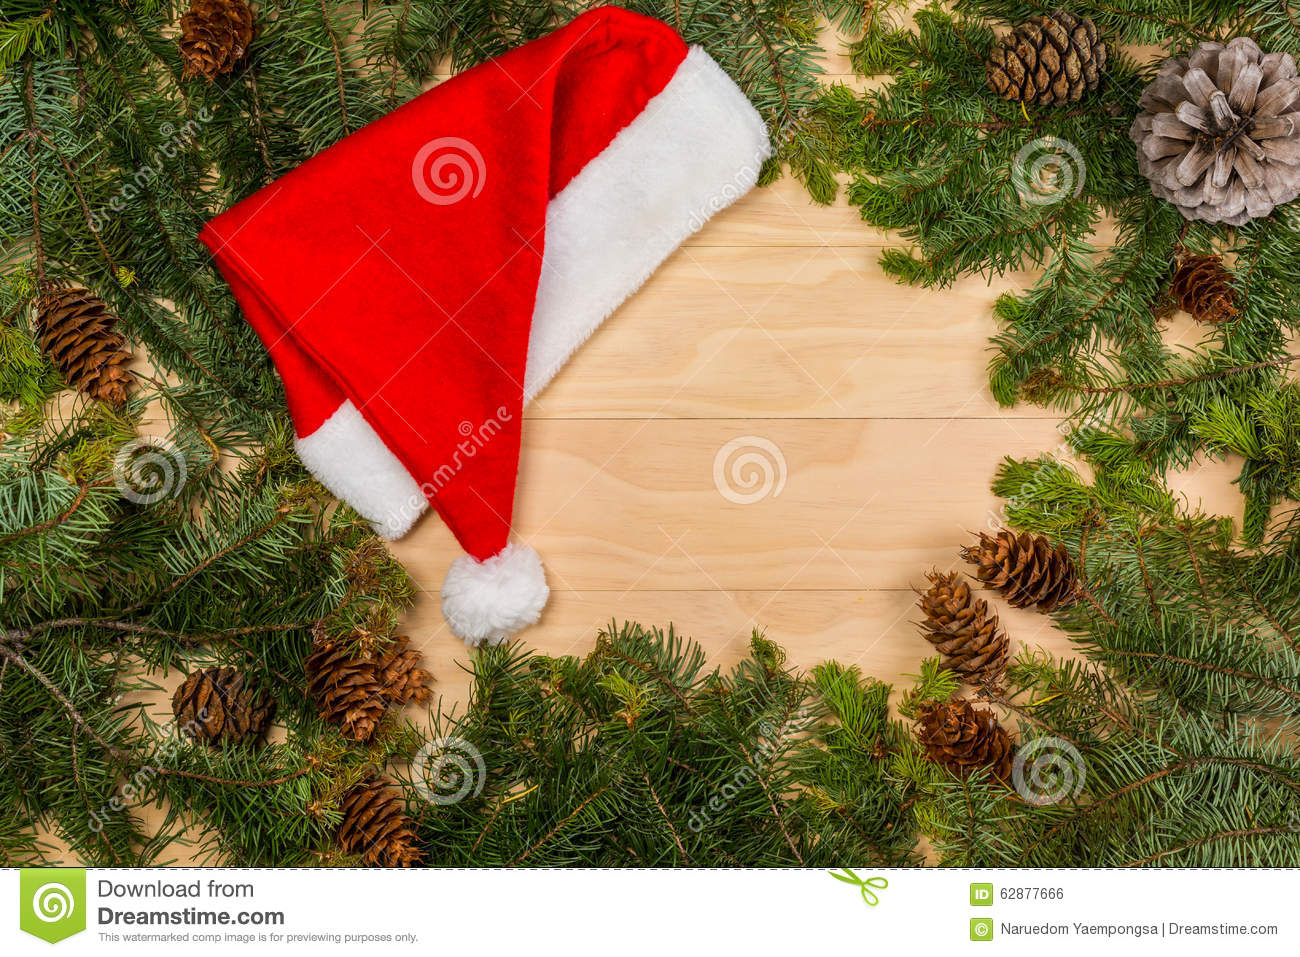 Pine cones and branches with Santa Claus red hat